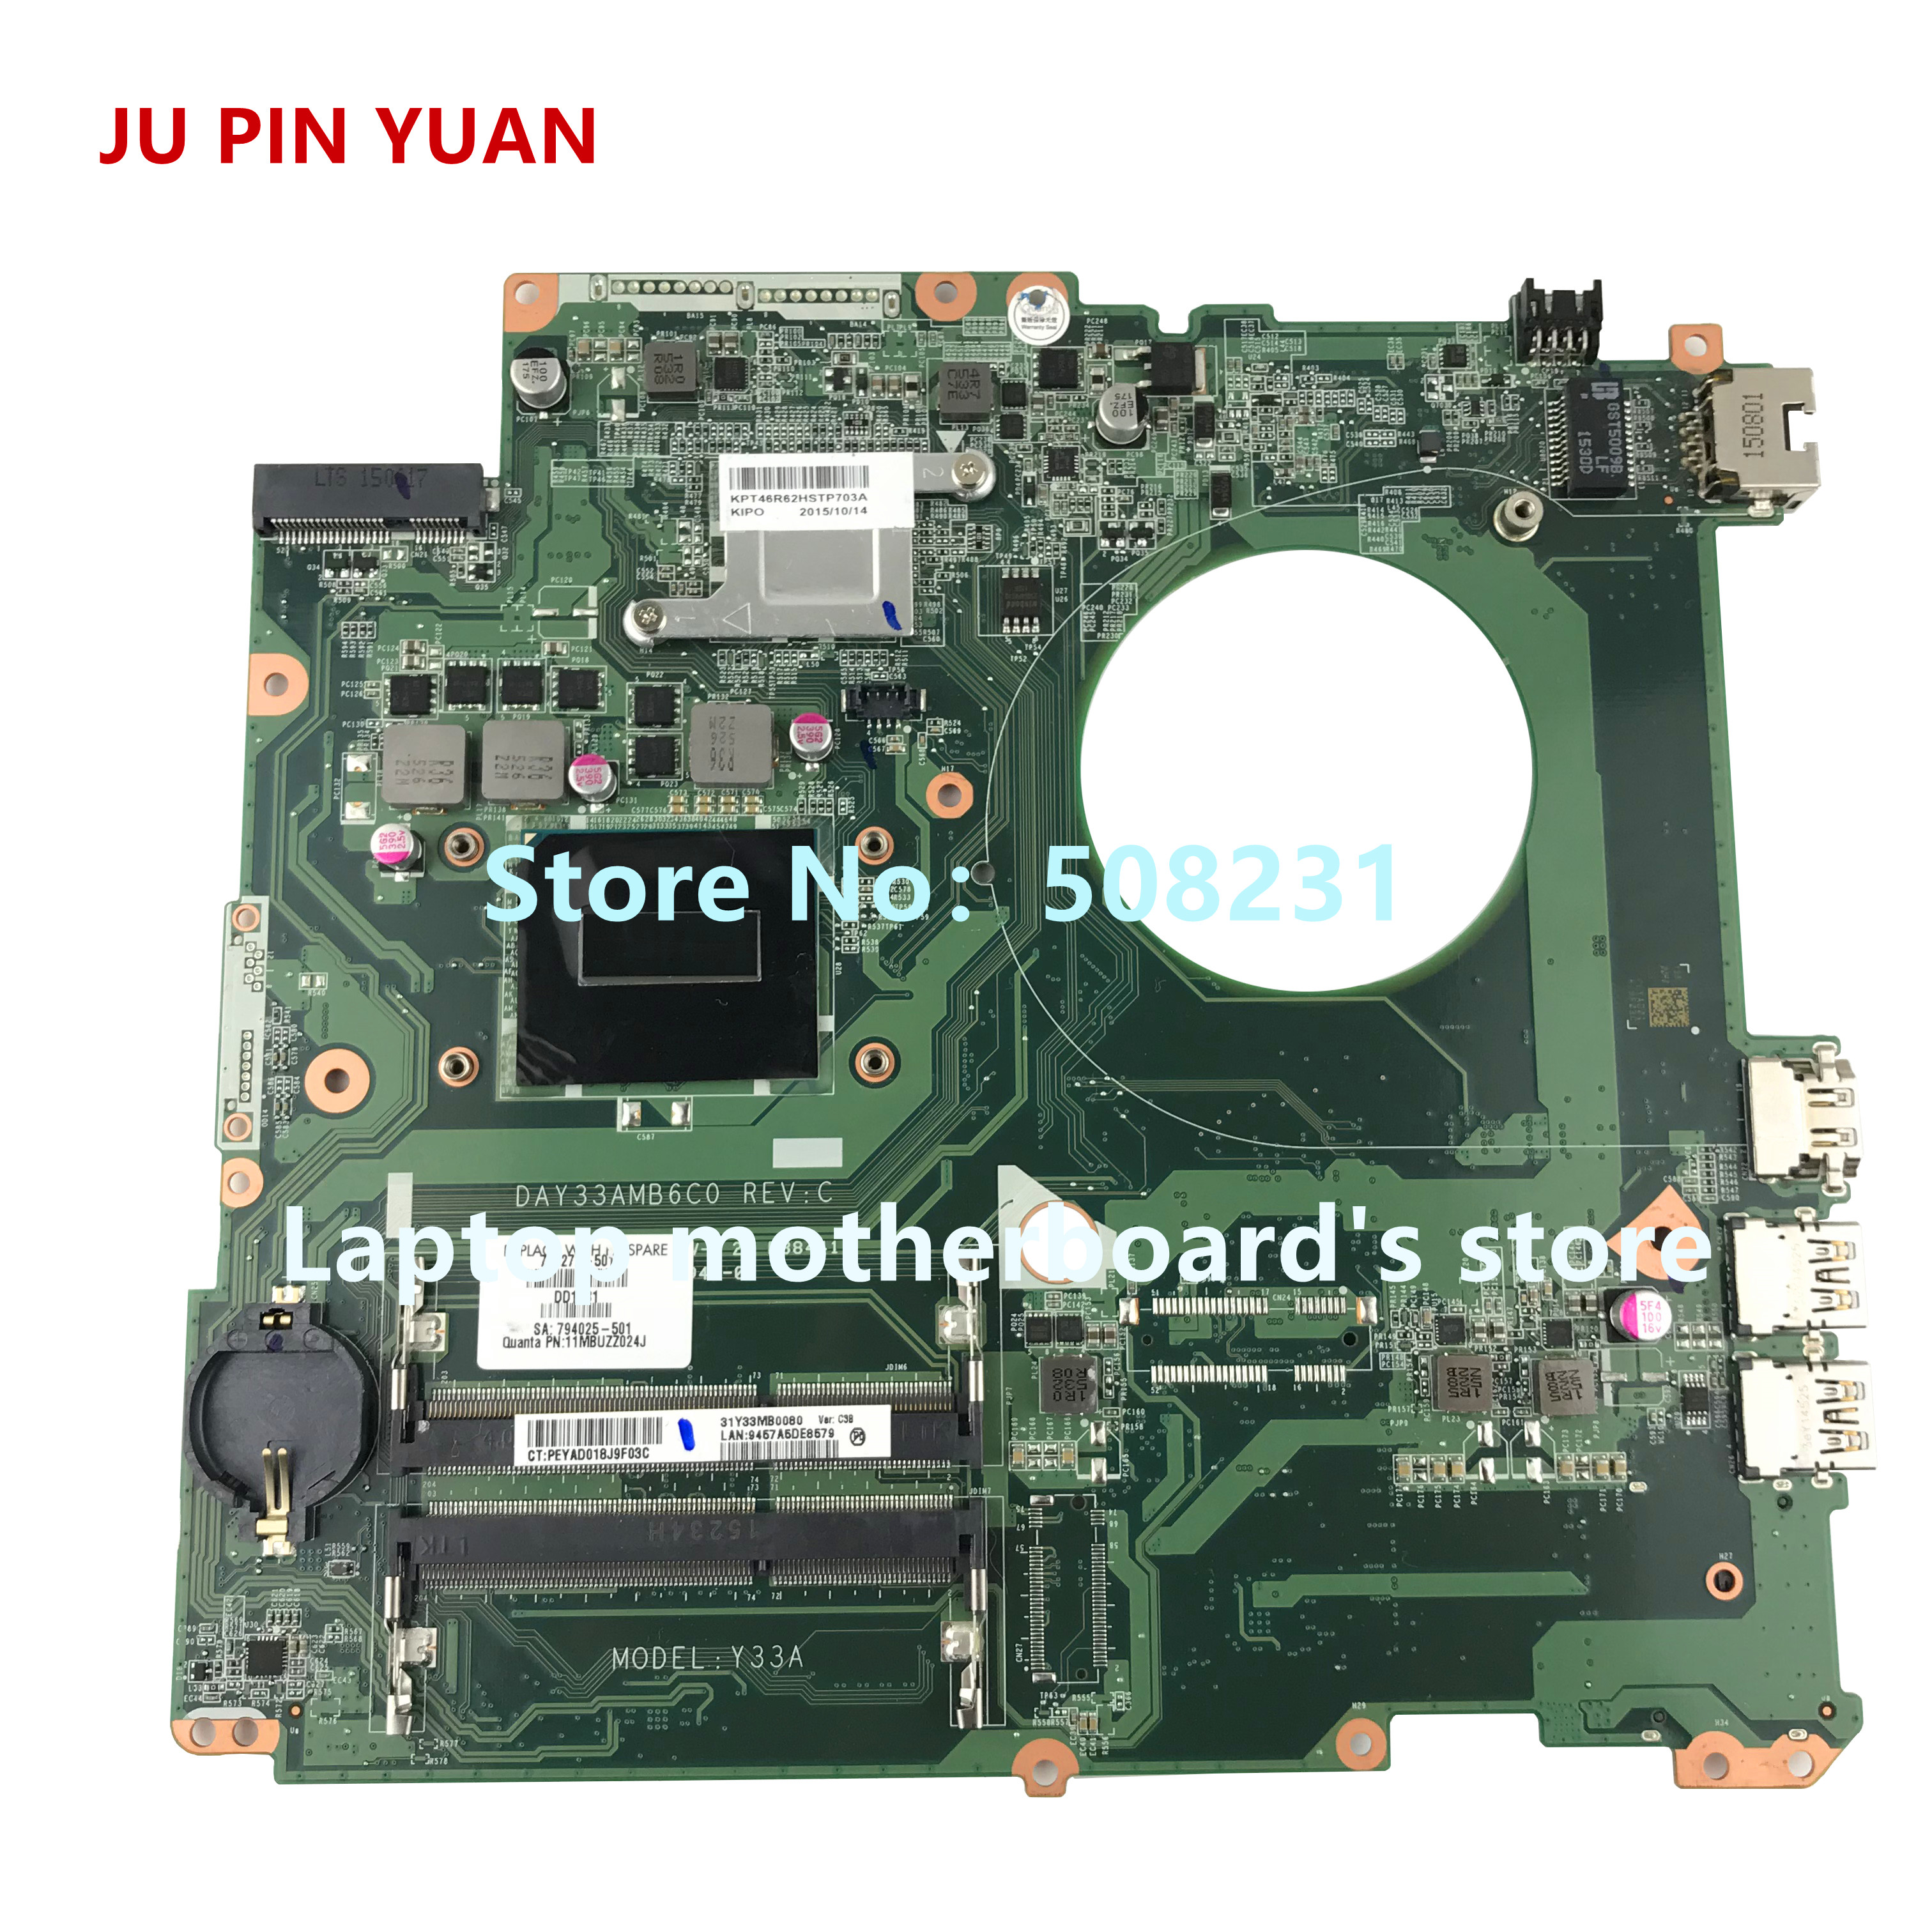 JU PIN YUAN 793272-501 DAY33AMB6C0 Y33A mainboard for HP ENVY 17-K 17T-K laptop motherboard with HM87 i7-4720HQ fully TestedJU PIN YUAN 793272-501 DAY33AMB6C0 Y33A mainboard for HP ENVY 17-K 17T-K laptop motherboard with HM87 i7-4720HQ fully Tested